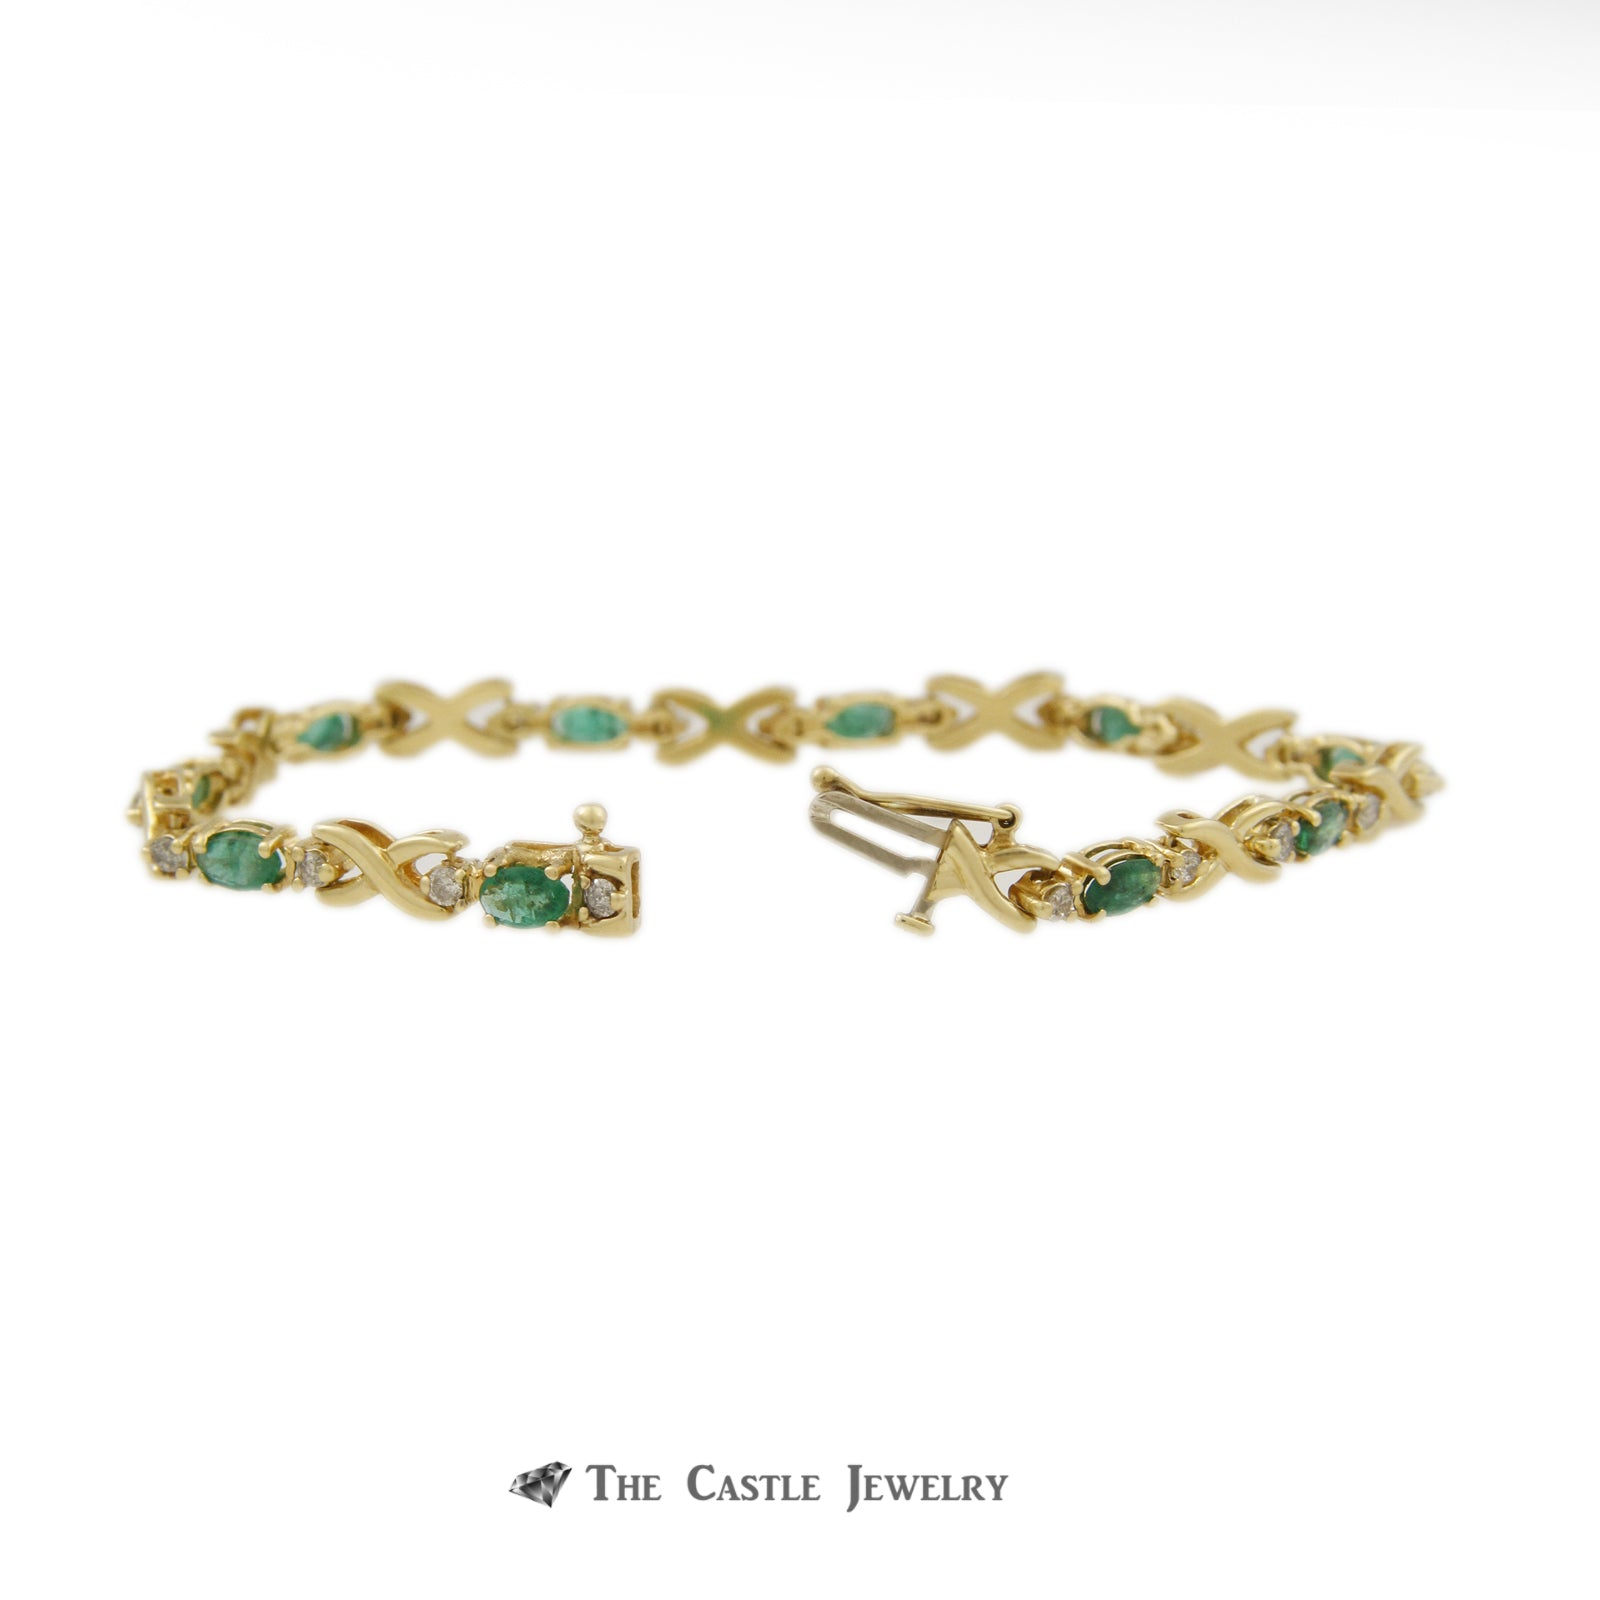 Oval Emerald Bracelet with X Links & Diamond Accents in 14K Yellow Gold-1